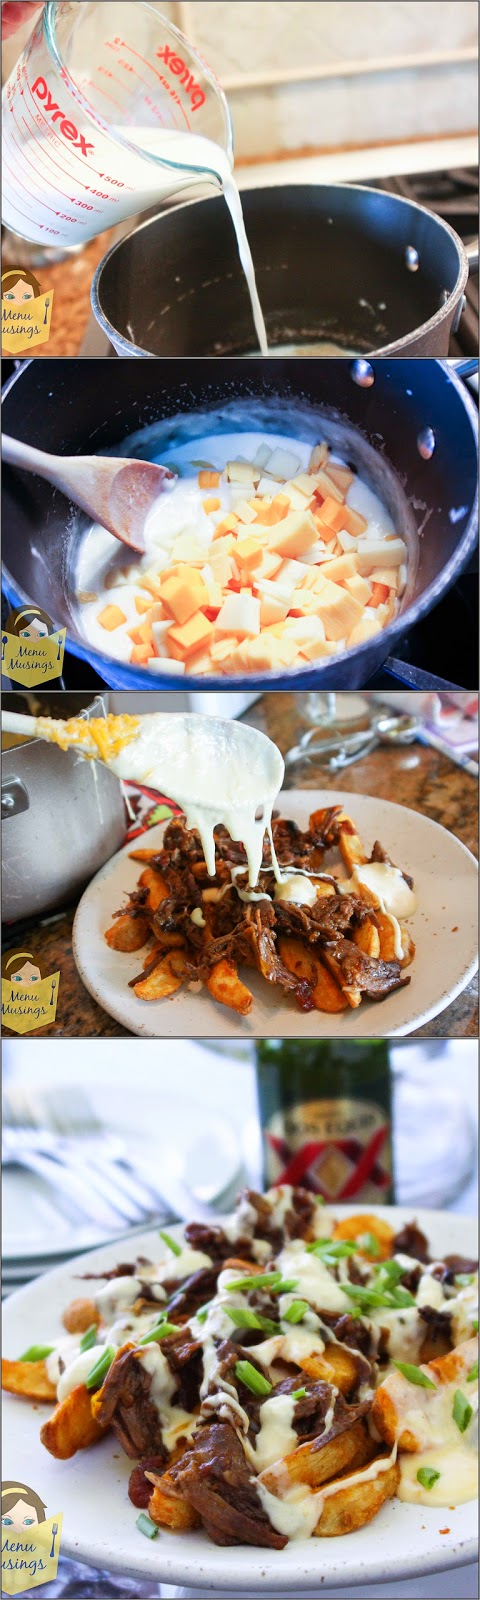 http://menumusings.blogspot.com/2014/05/pot-roast-patio-fries.html